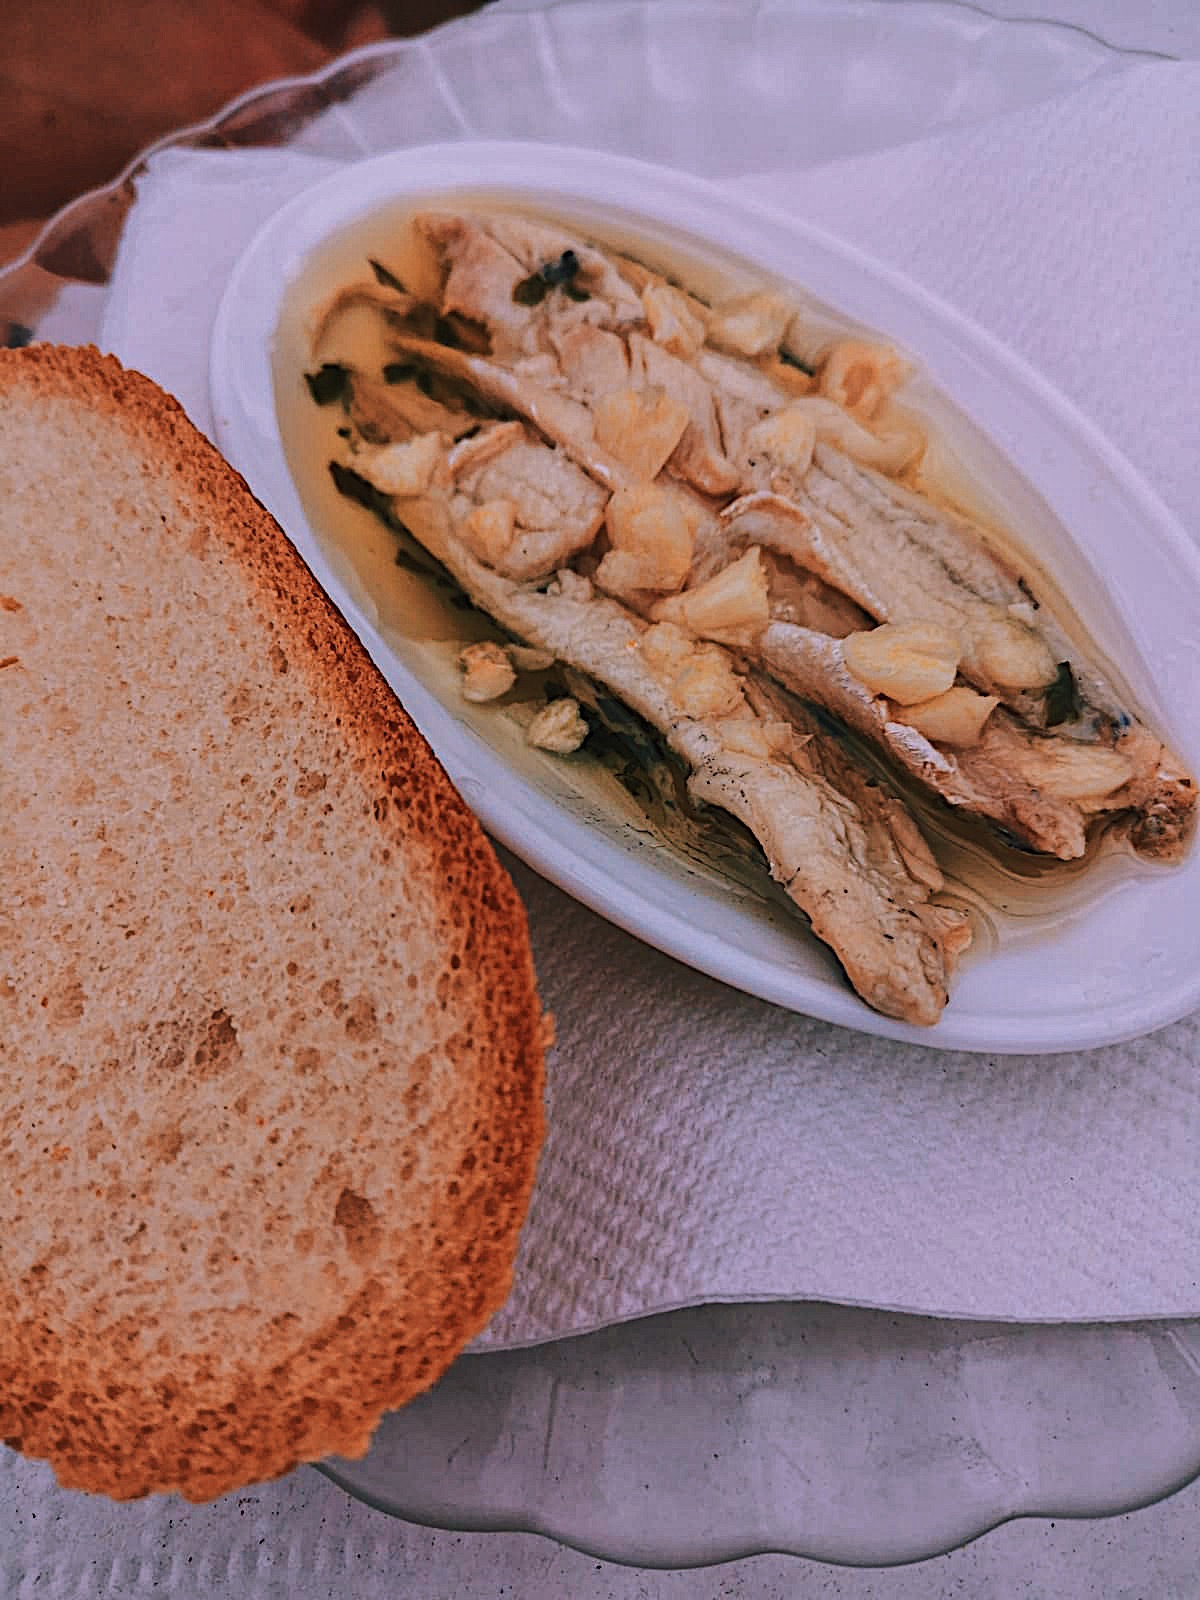 Boquerones en Vinagre - Anchovies in vinegar. A typical tapa in the South of Spain.